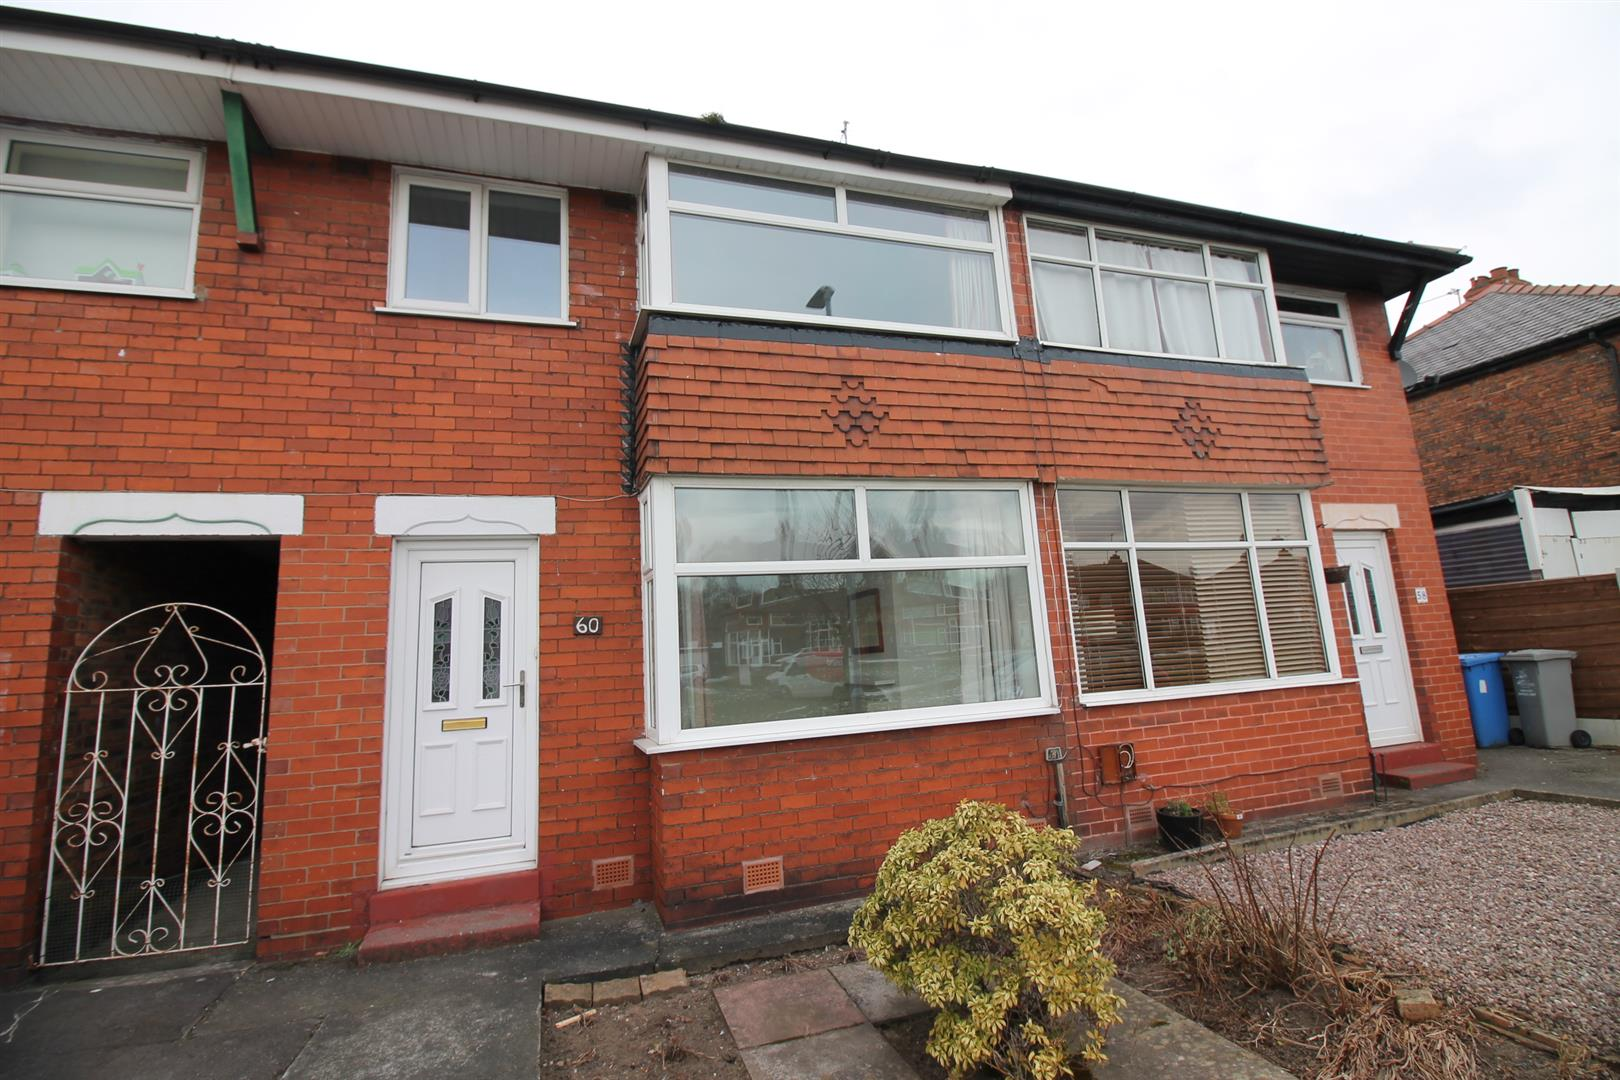 3 Bedroom House - Mid Terrace To Let